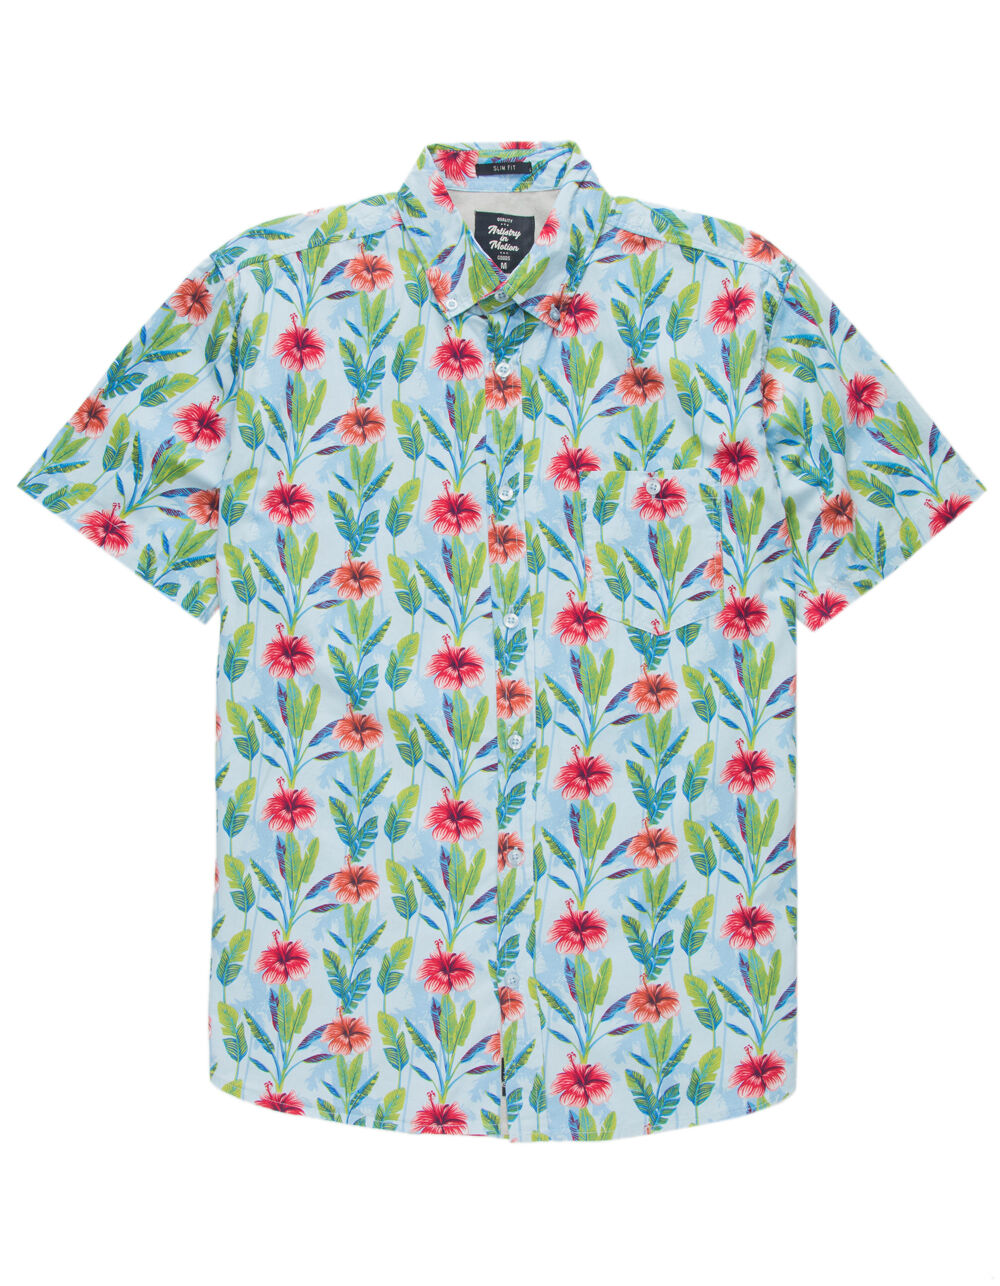 Image of ARTISTRY IN MOTION PARADISE SHIRT